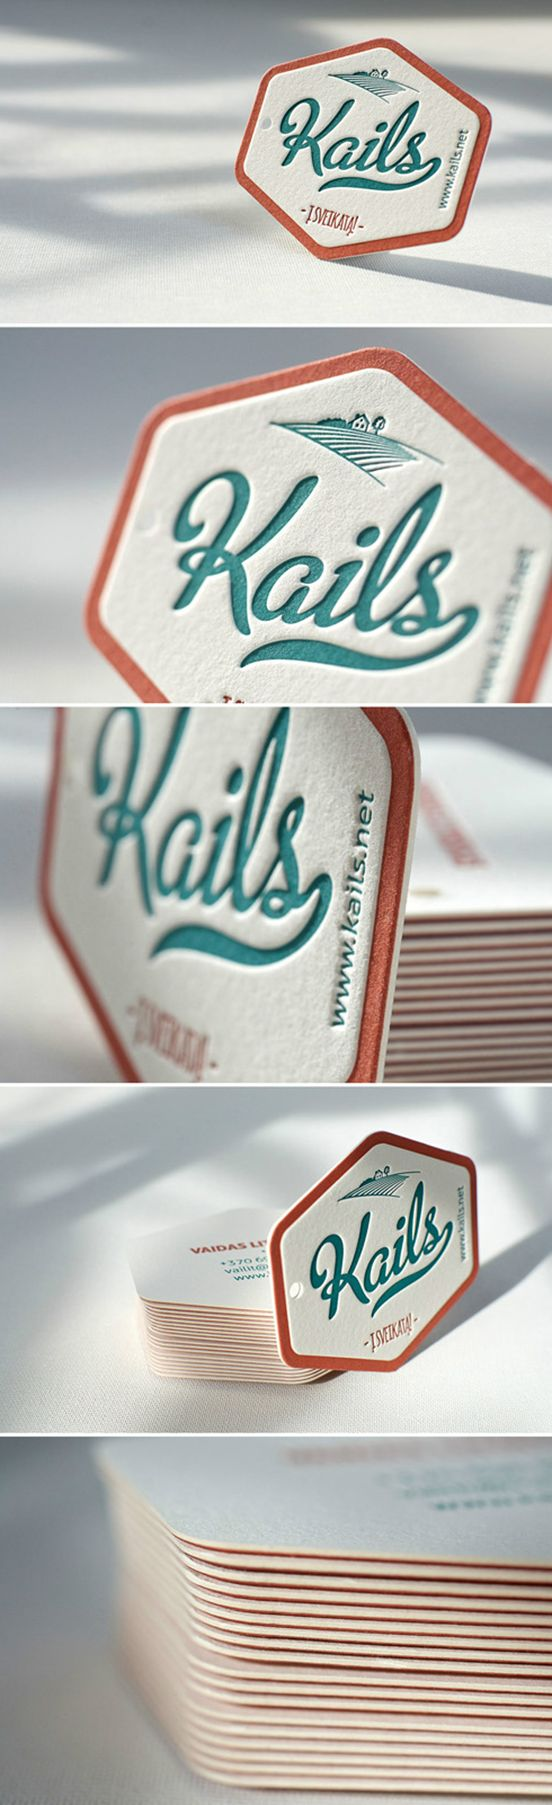 814 best Business Cards images on Pinterest | Stationery, Business ...